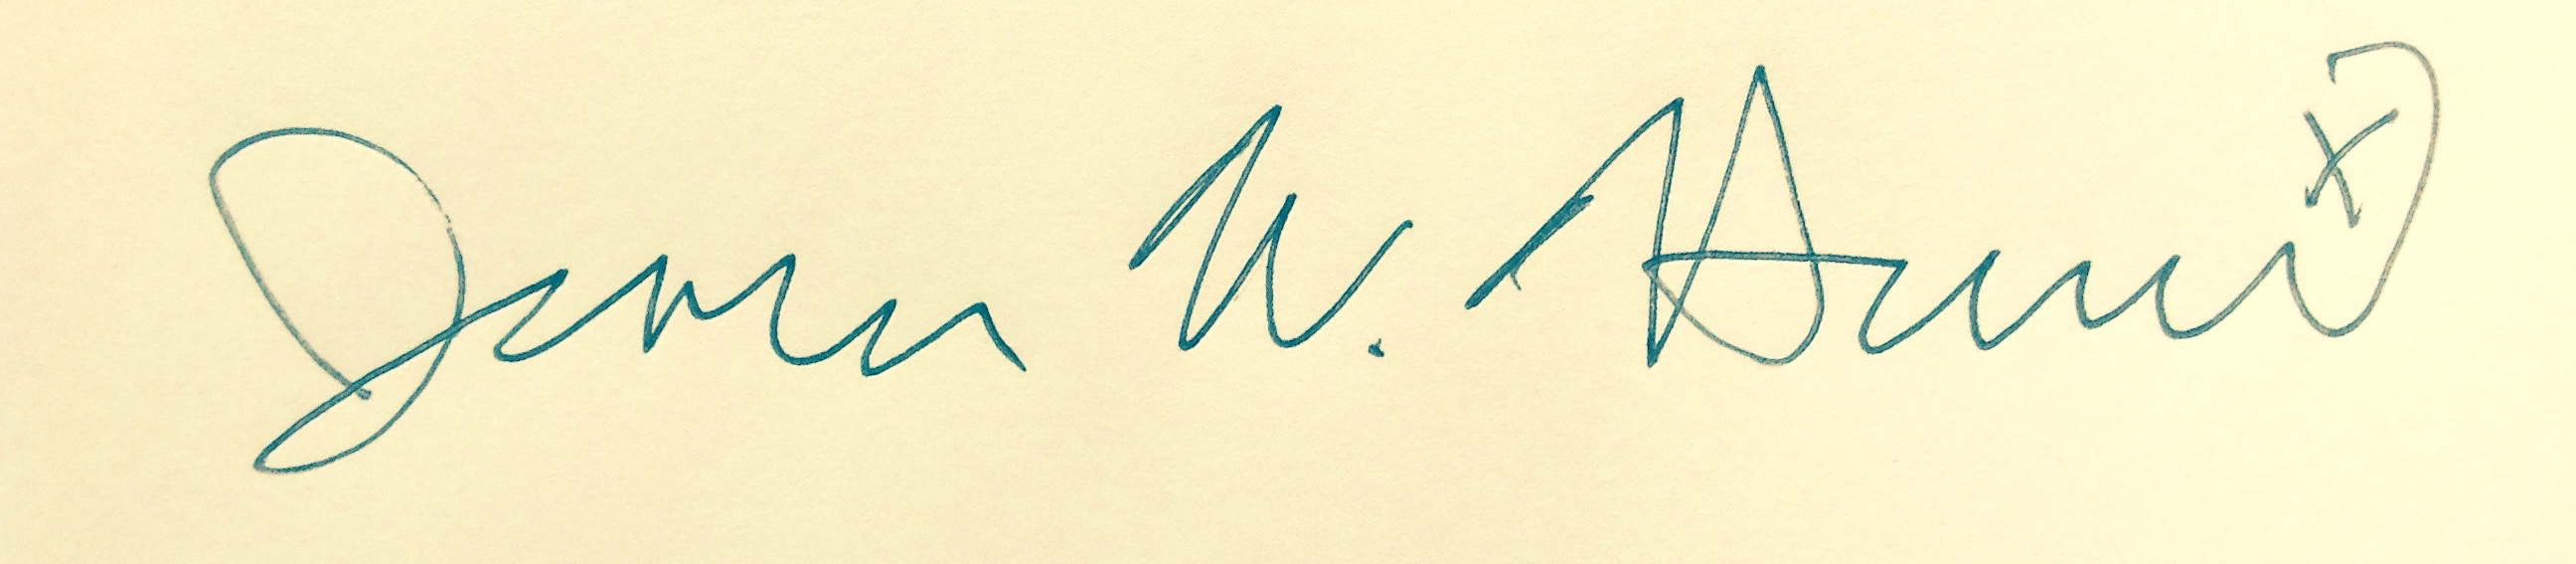 Jim Harris's Signature